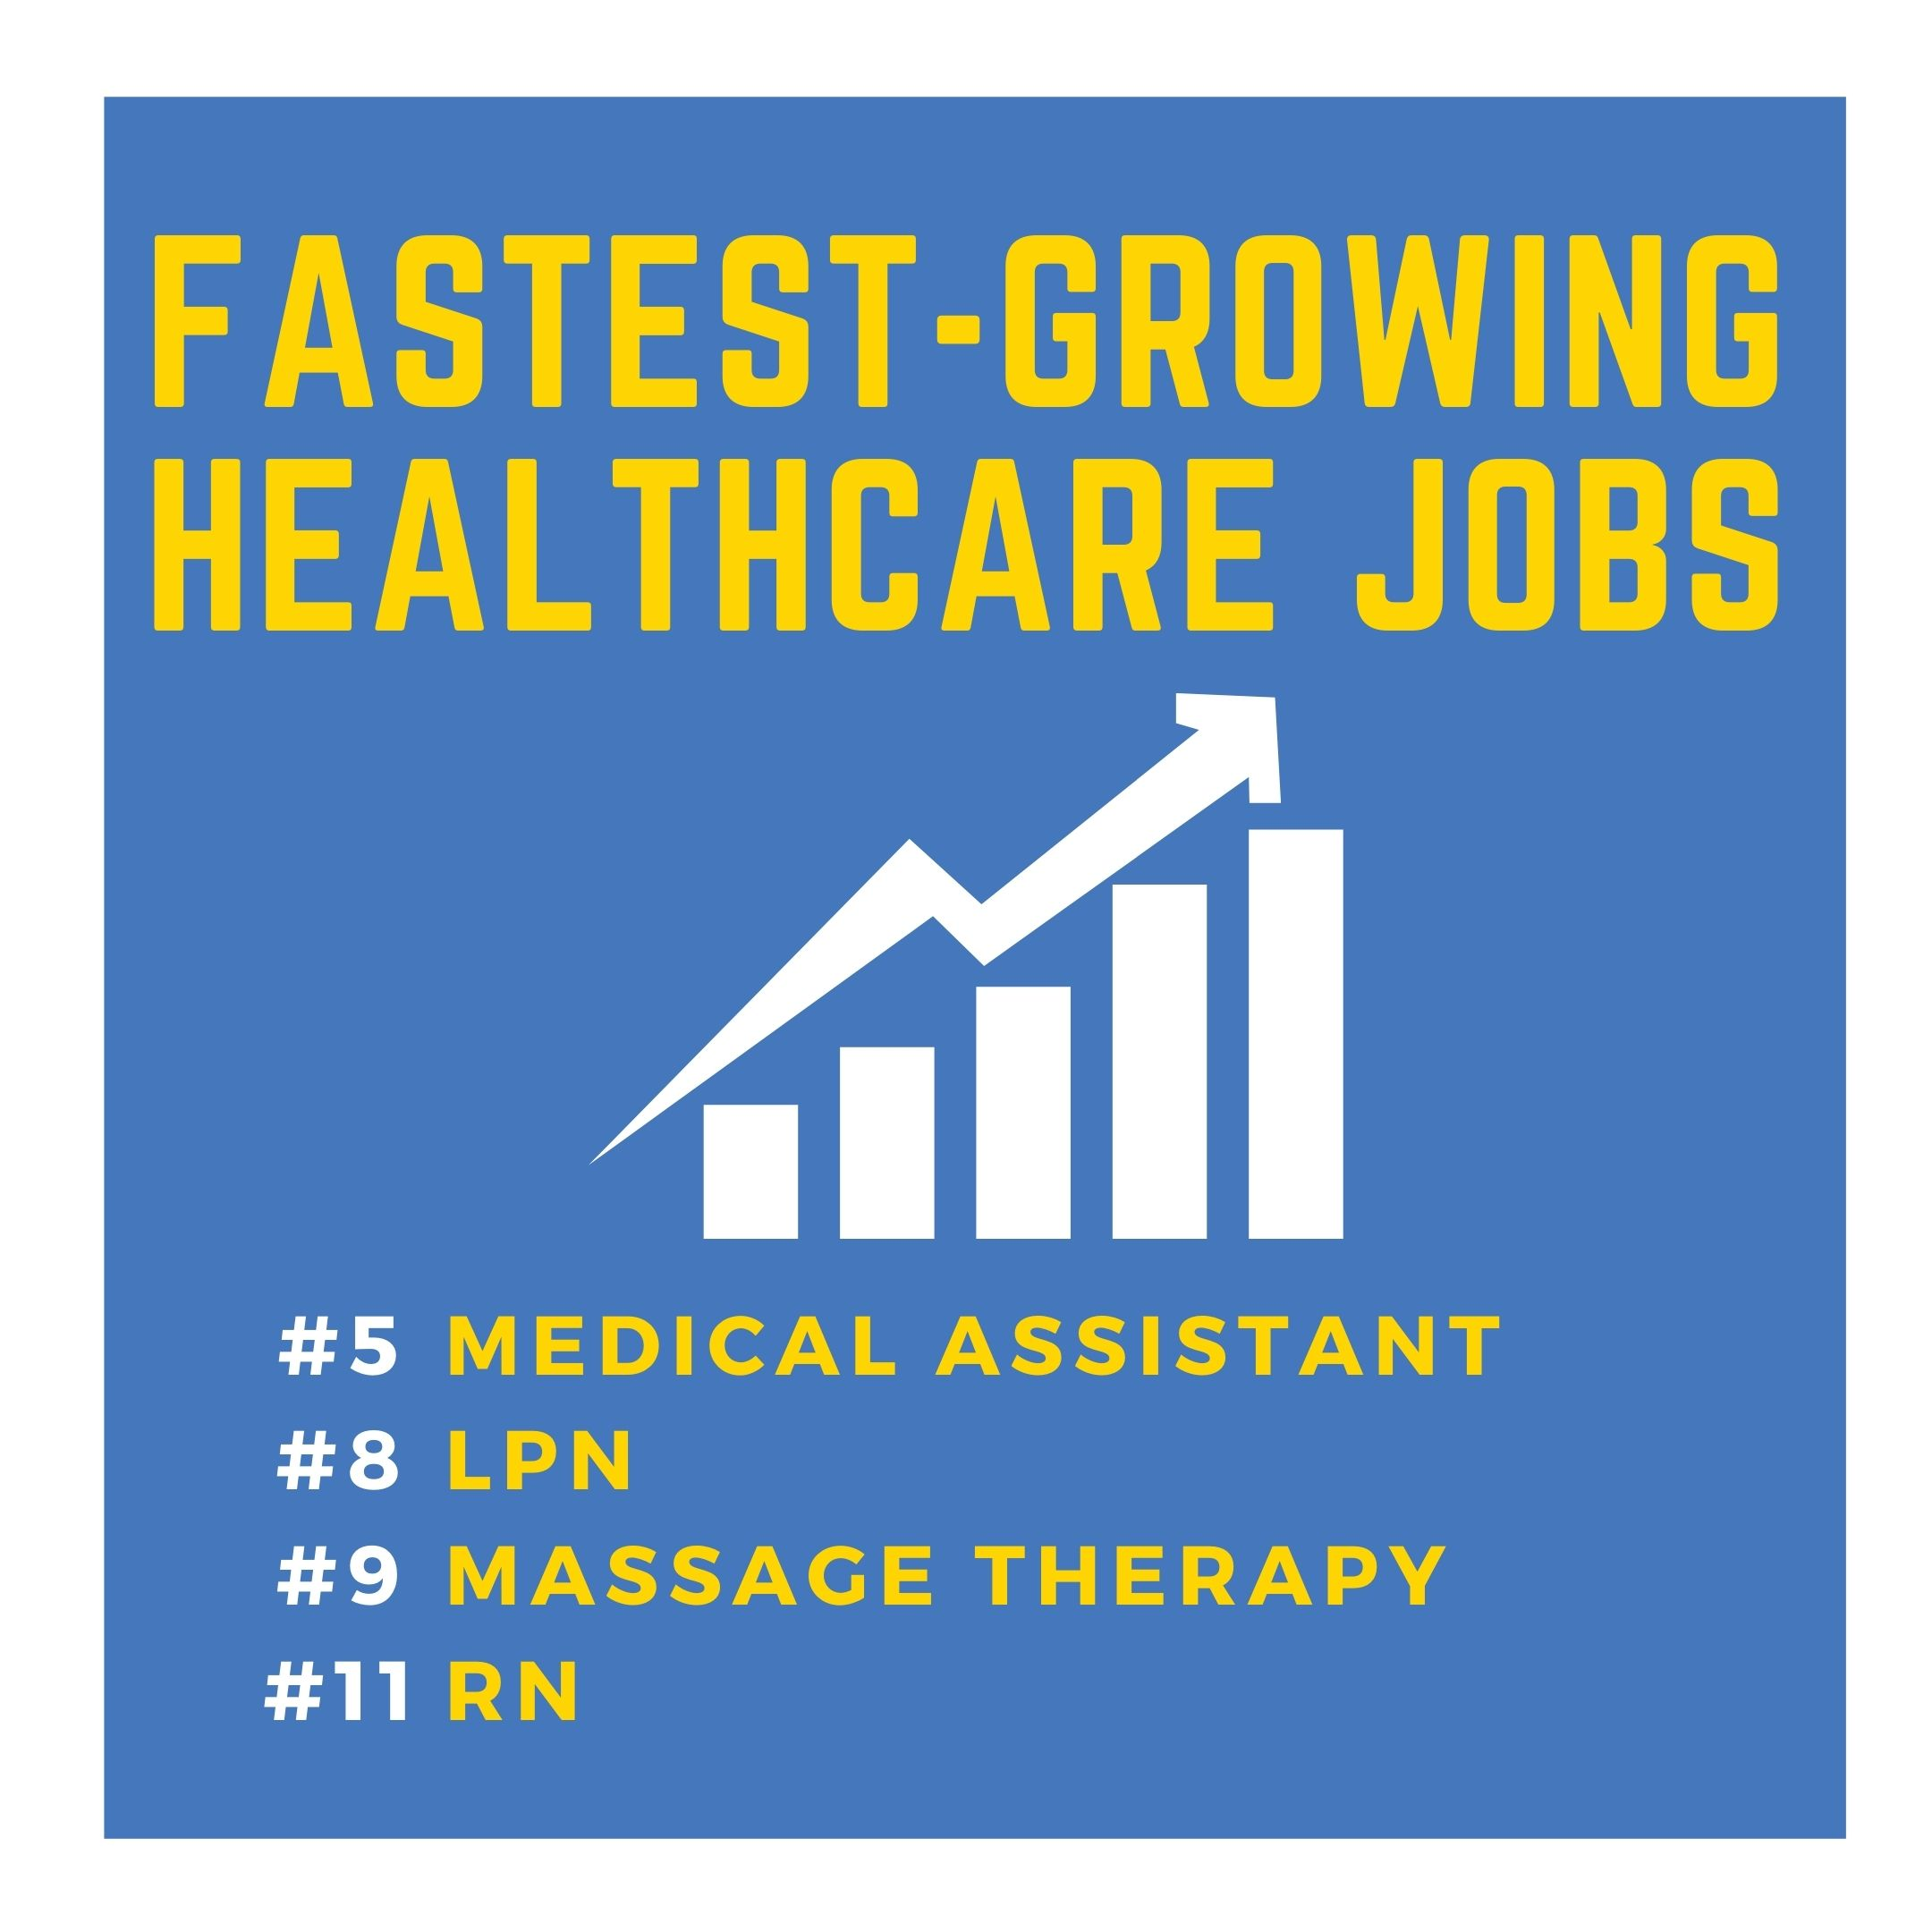 Fastest-Growing Healthcare Jobs - Swedish Institute - New York, NY